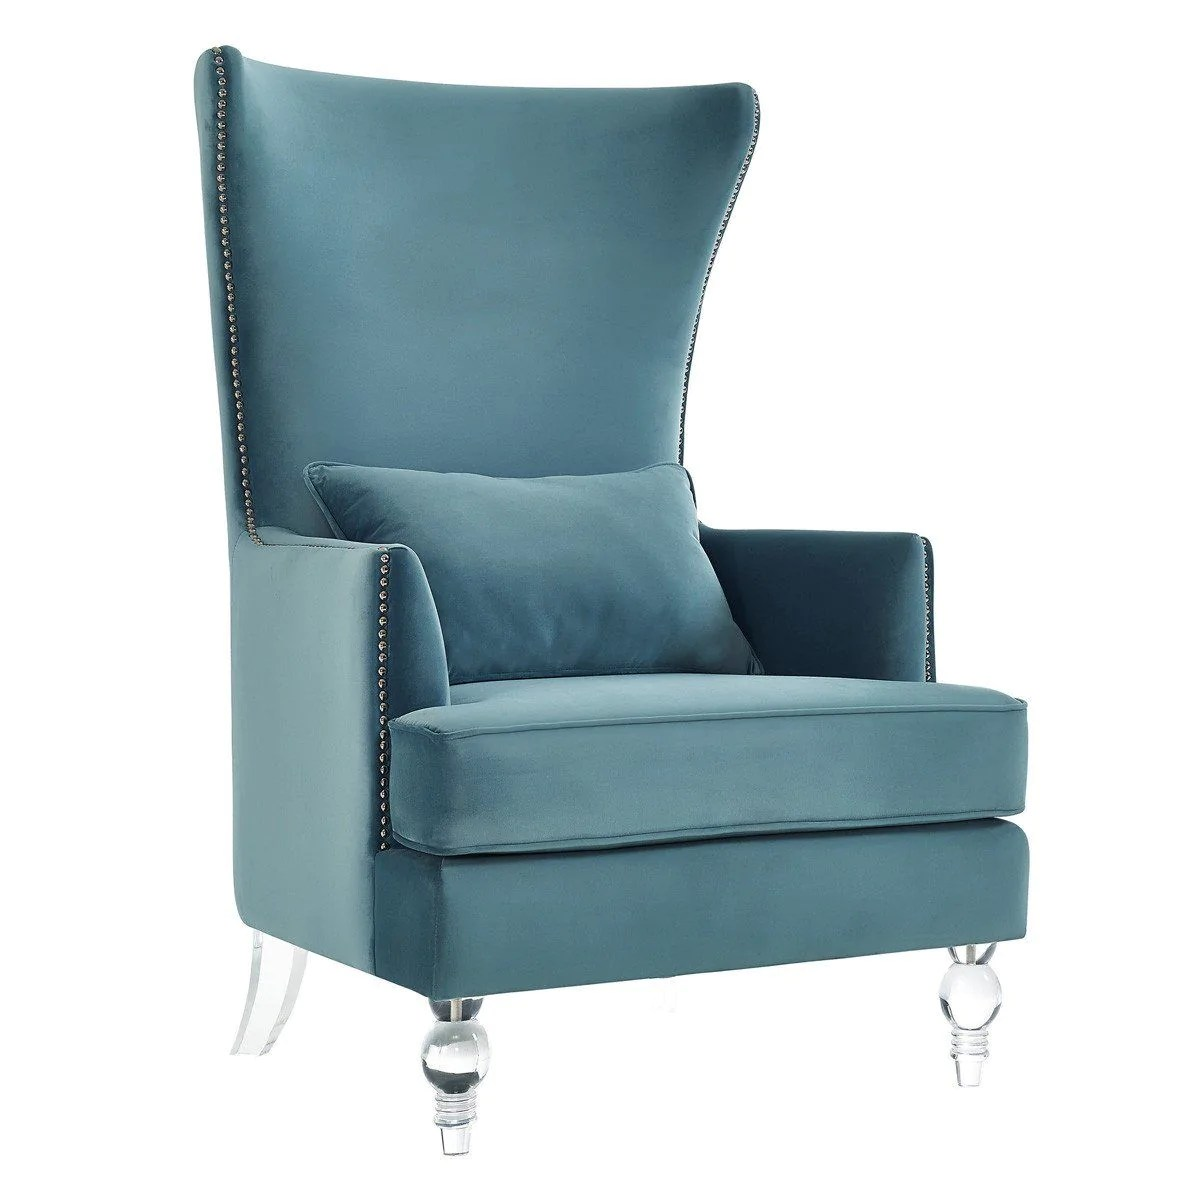 Blue Velvet Chair Tov Furniture Bristol Sea Blue Velvet Chair With Lucite